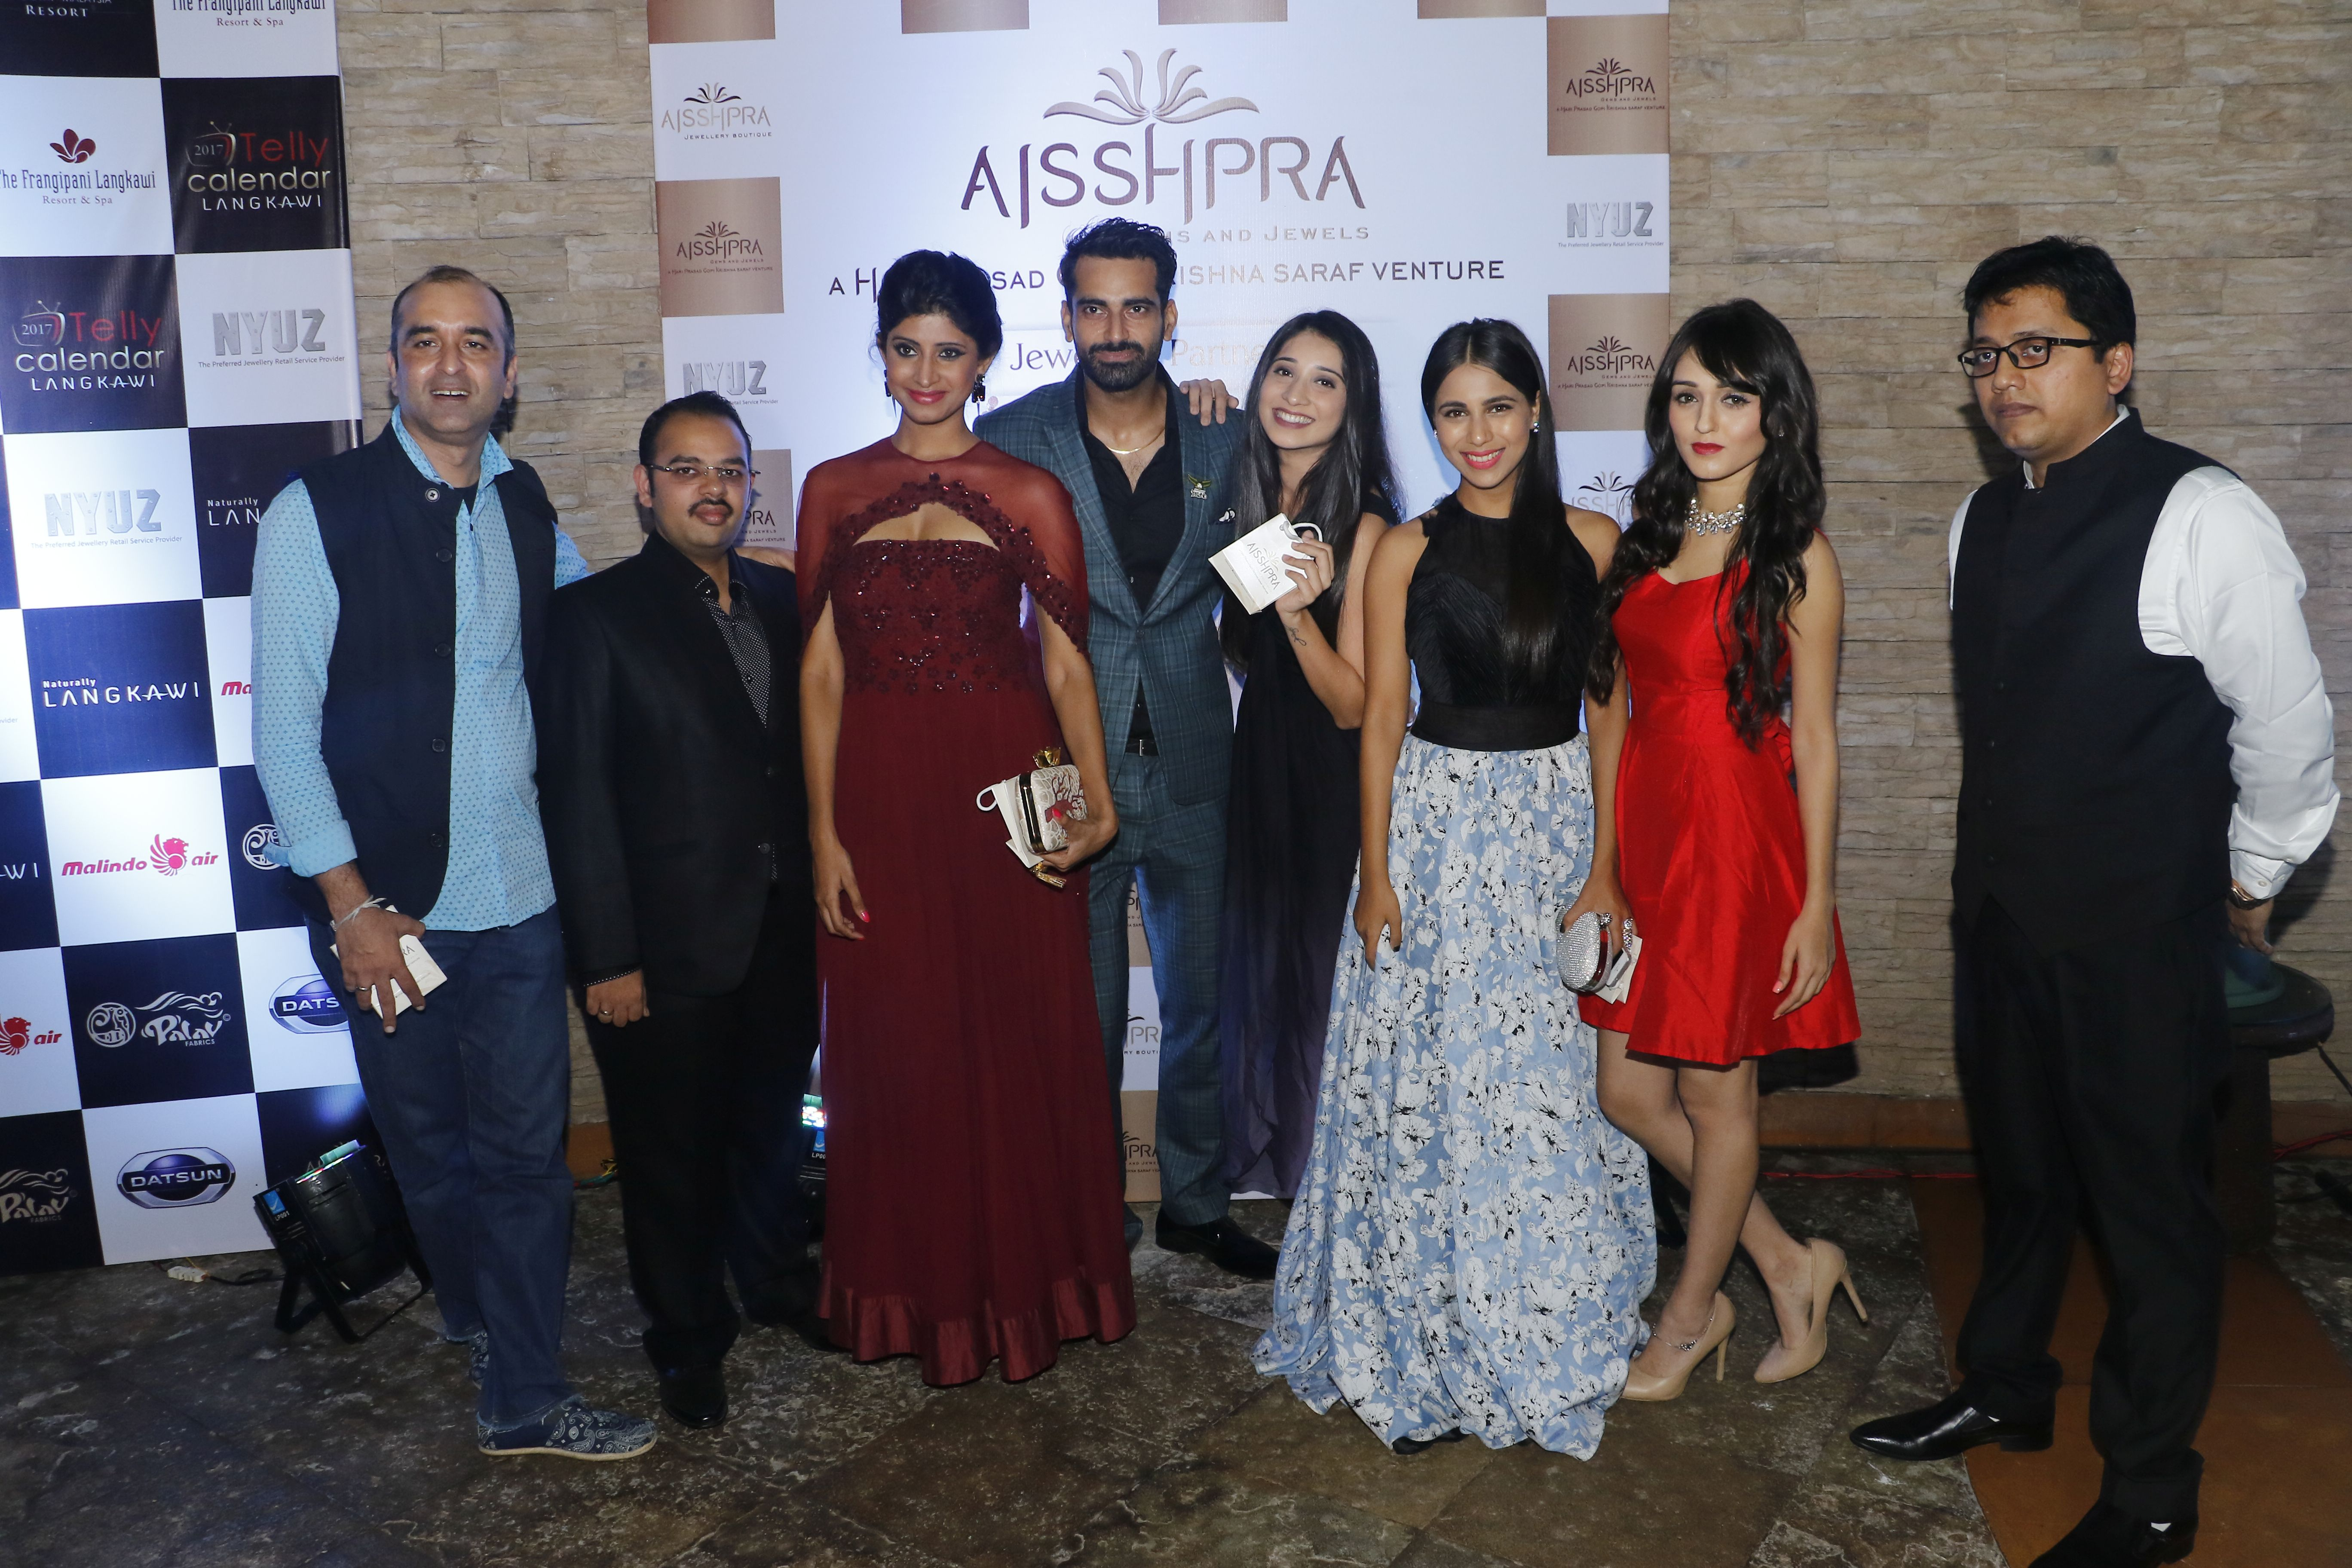 mr-vaibhav-saraf-director-aisshpra-gem-and-jewels-and-sunny-arora-director-marinating-films-with-the-calendar-girls-the-launch-of-telly-calendar-2017-langkawi